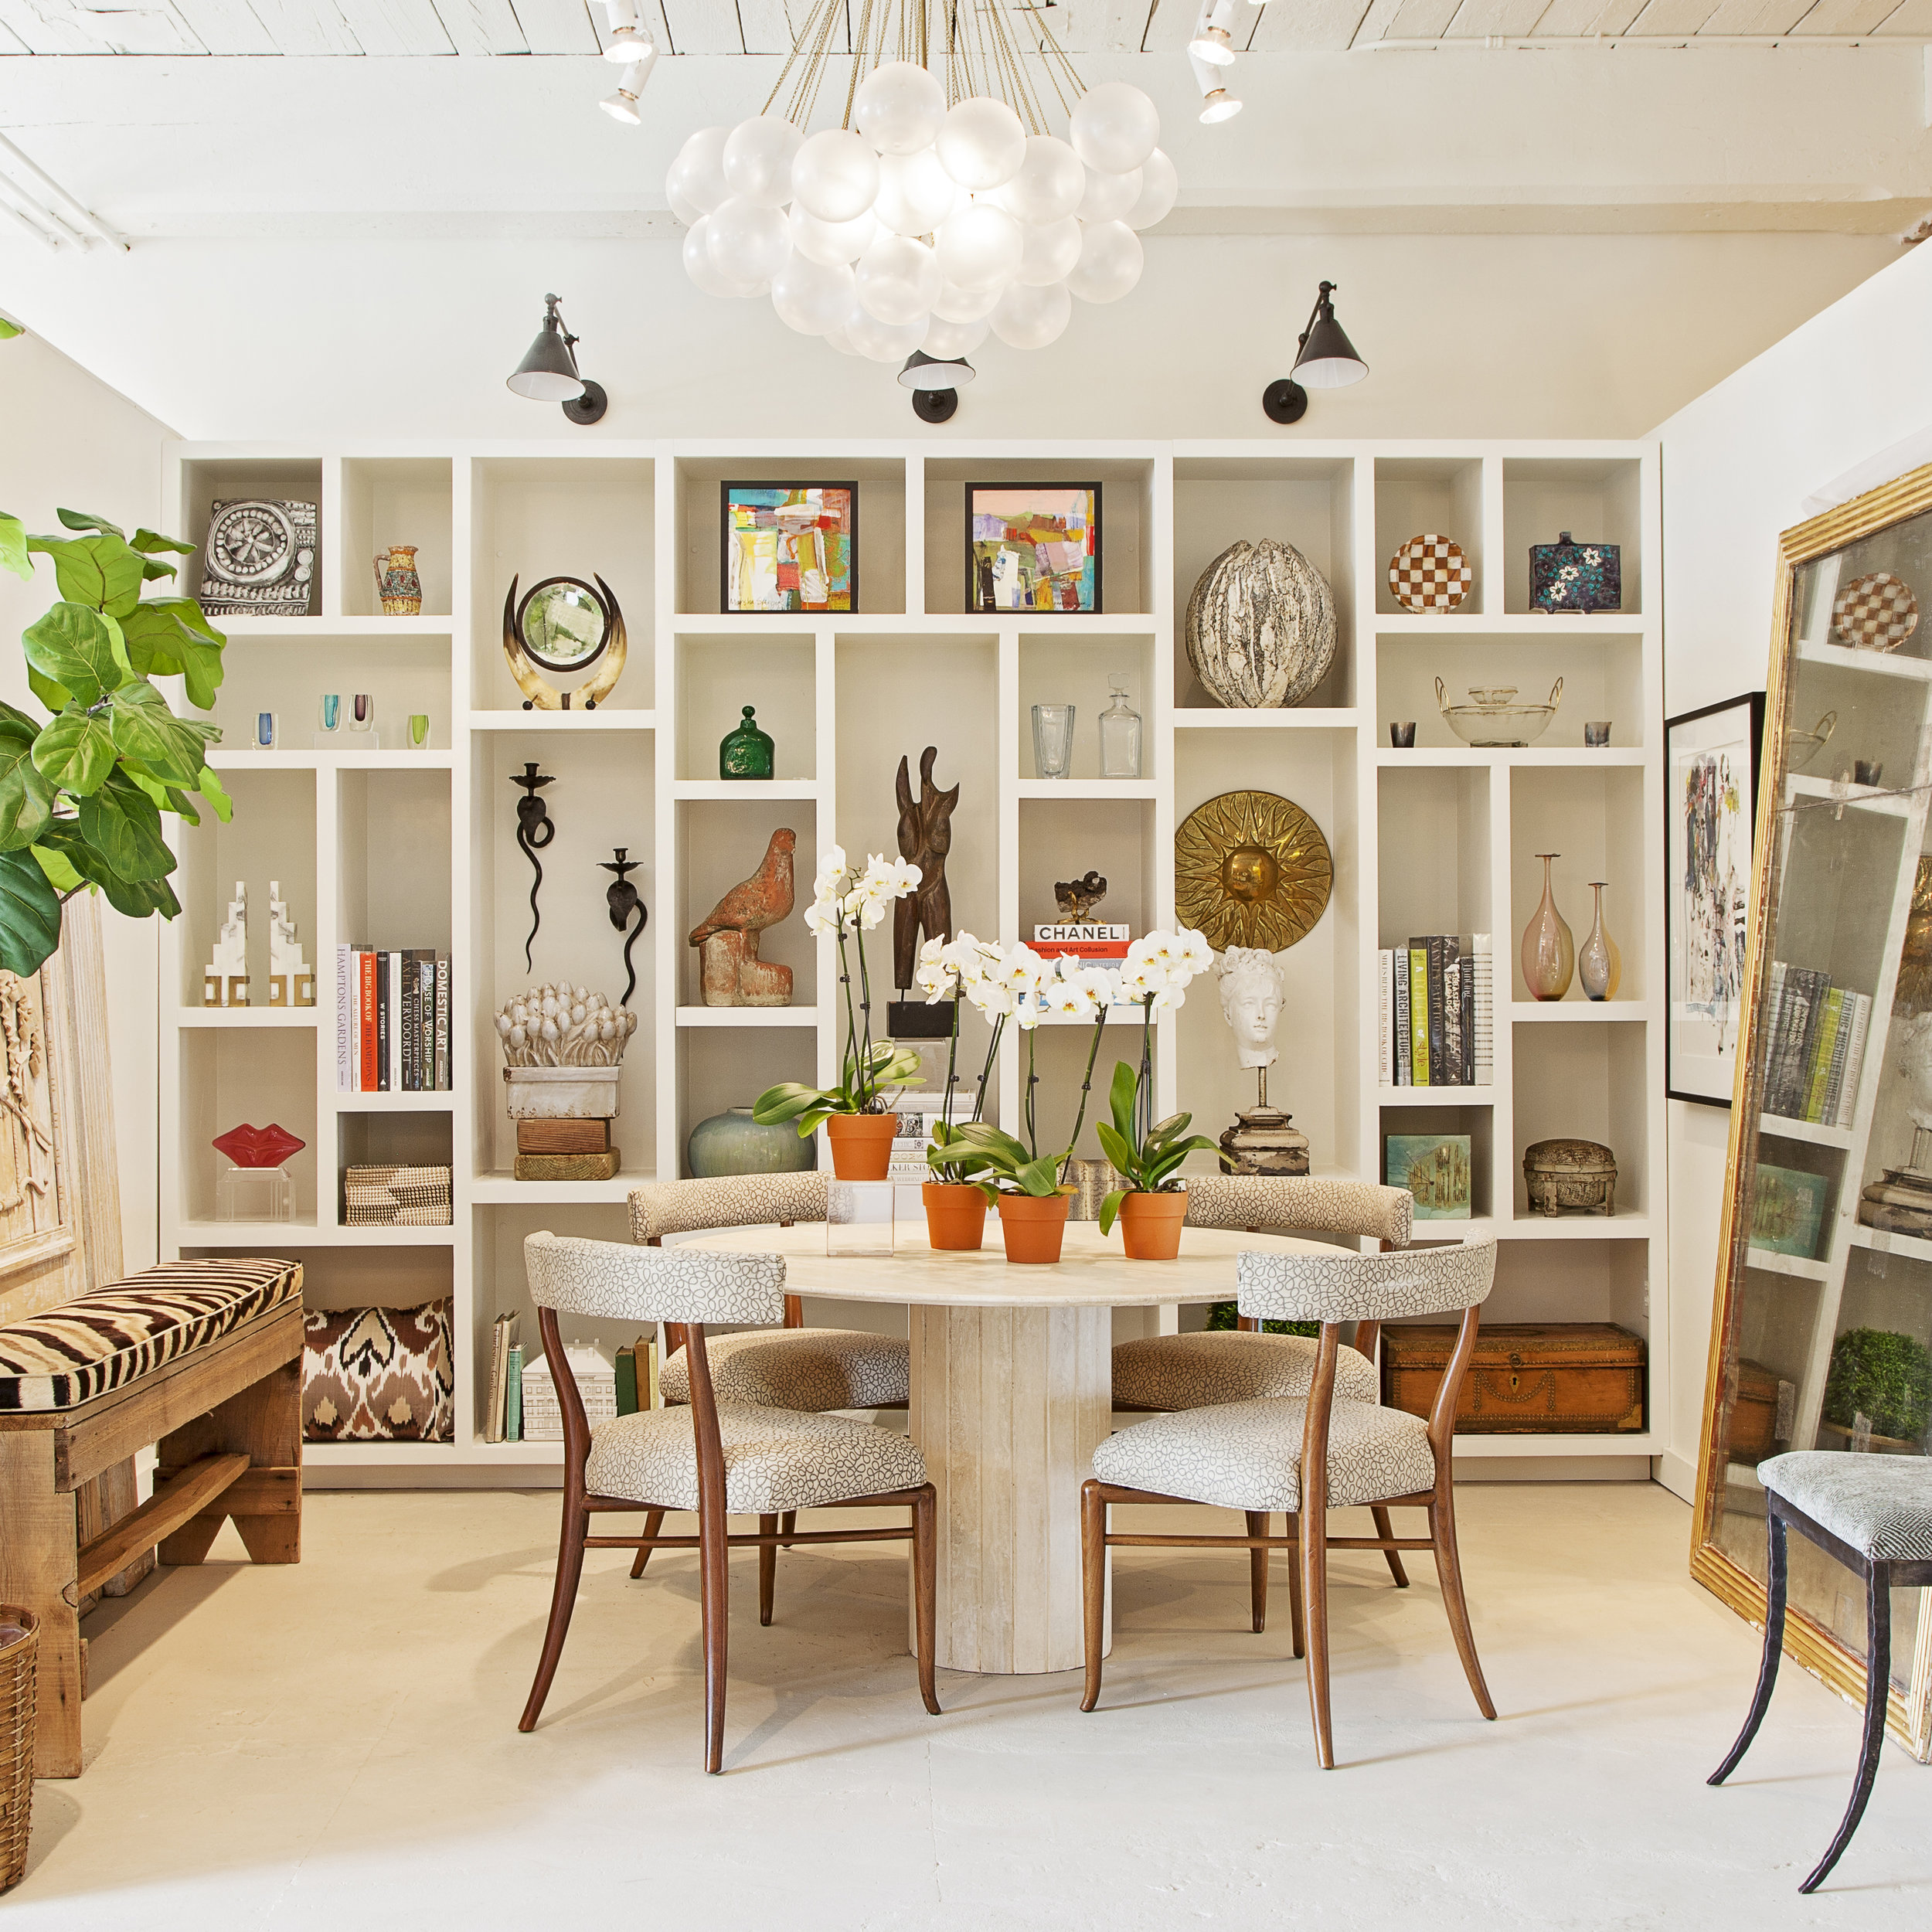 A one-of-a-kind design Charleston design collective, offering a curated selection of antiques, customer furniture, lighting, textiles and art.